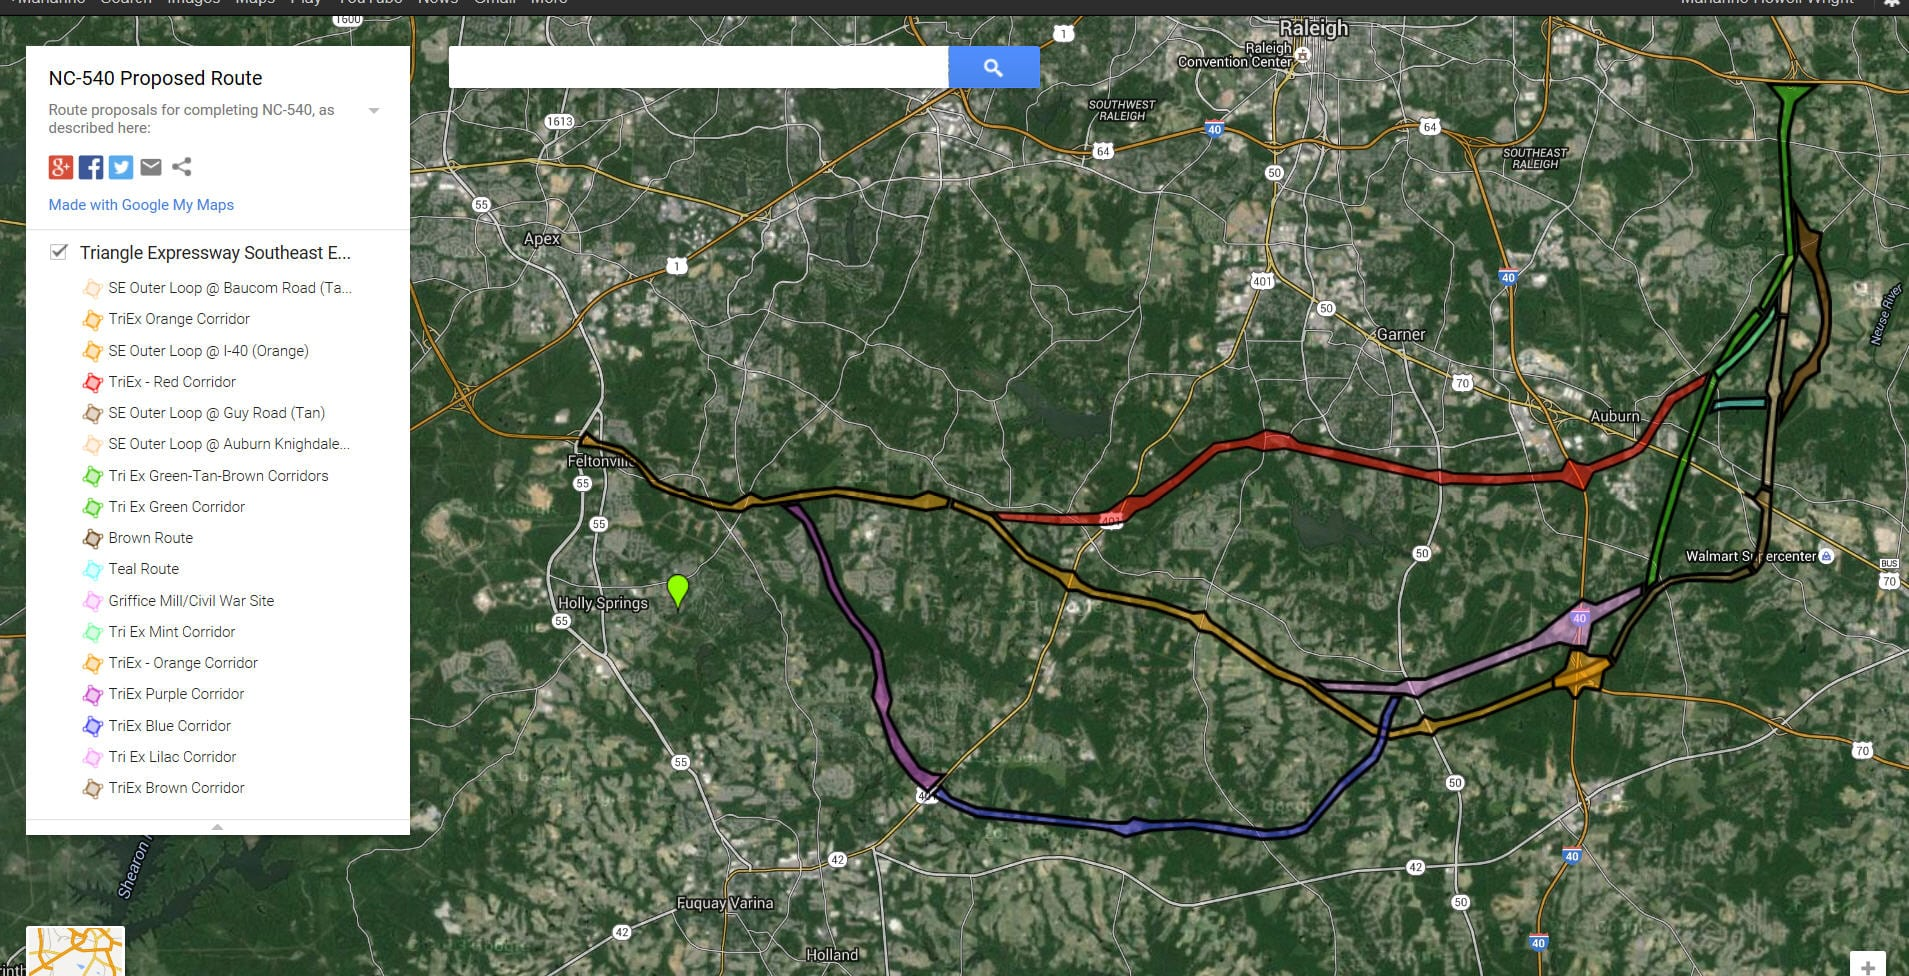 Google Map Showing 540 Extension in Holly Springs - The Best ... on tdot state map, n.c. division map, caltrans state map, nc state map, england map latitude and longitude map, indot state map, txdot state map,